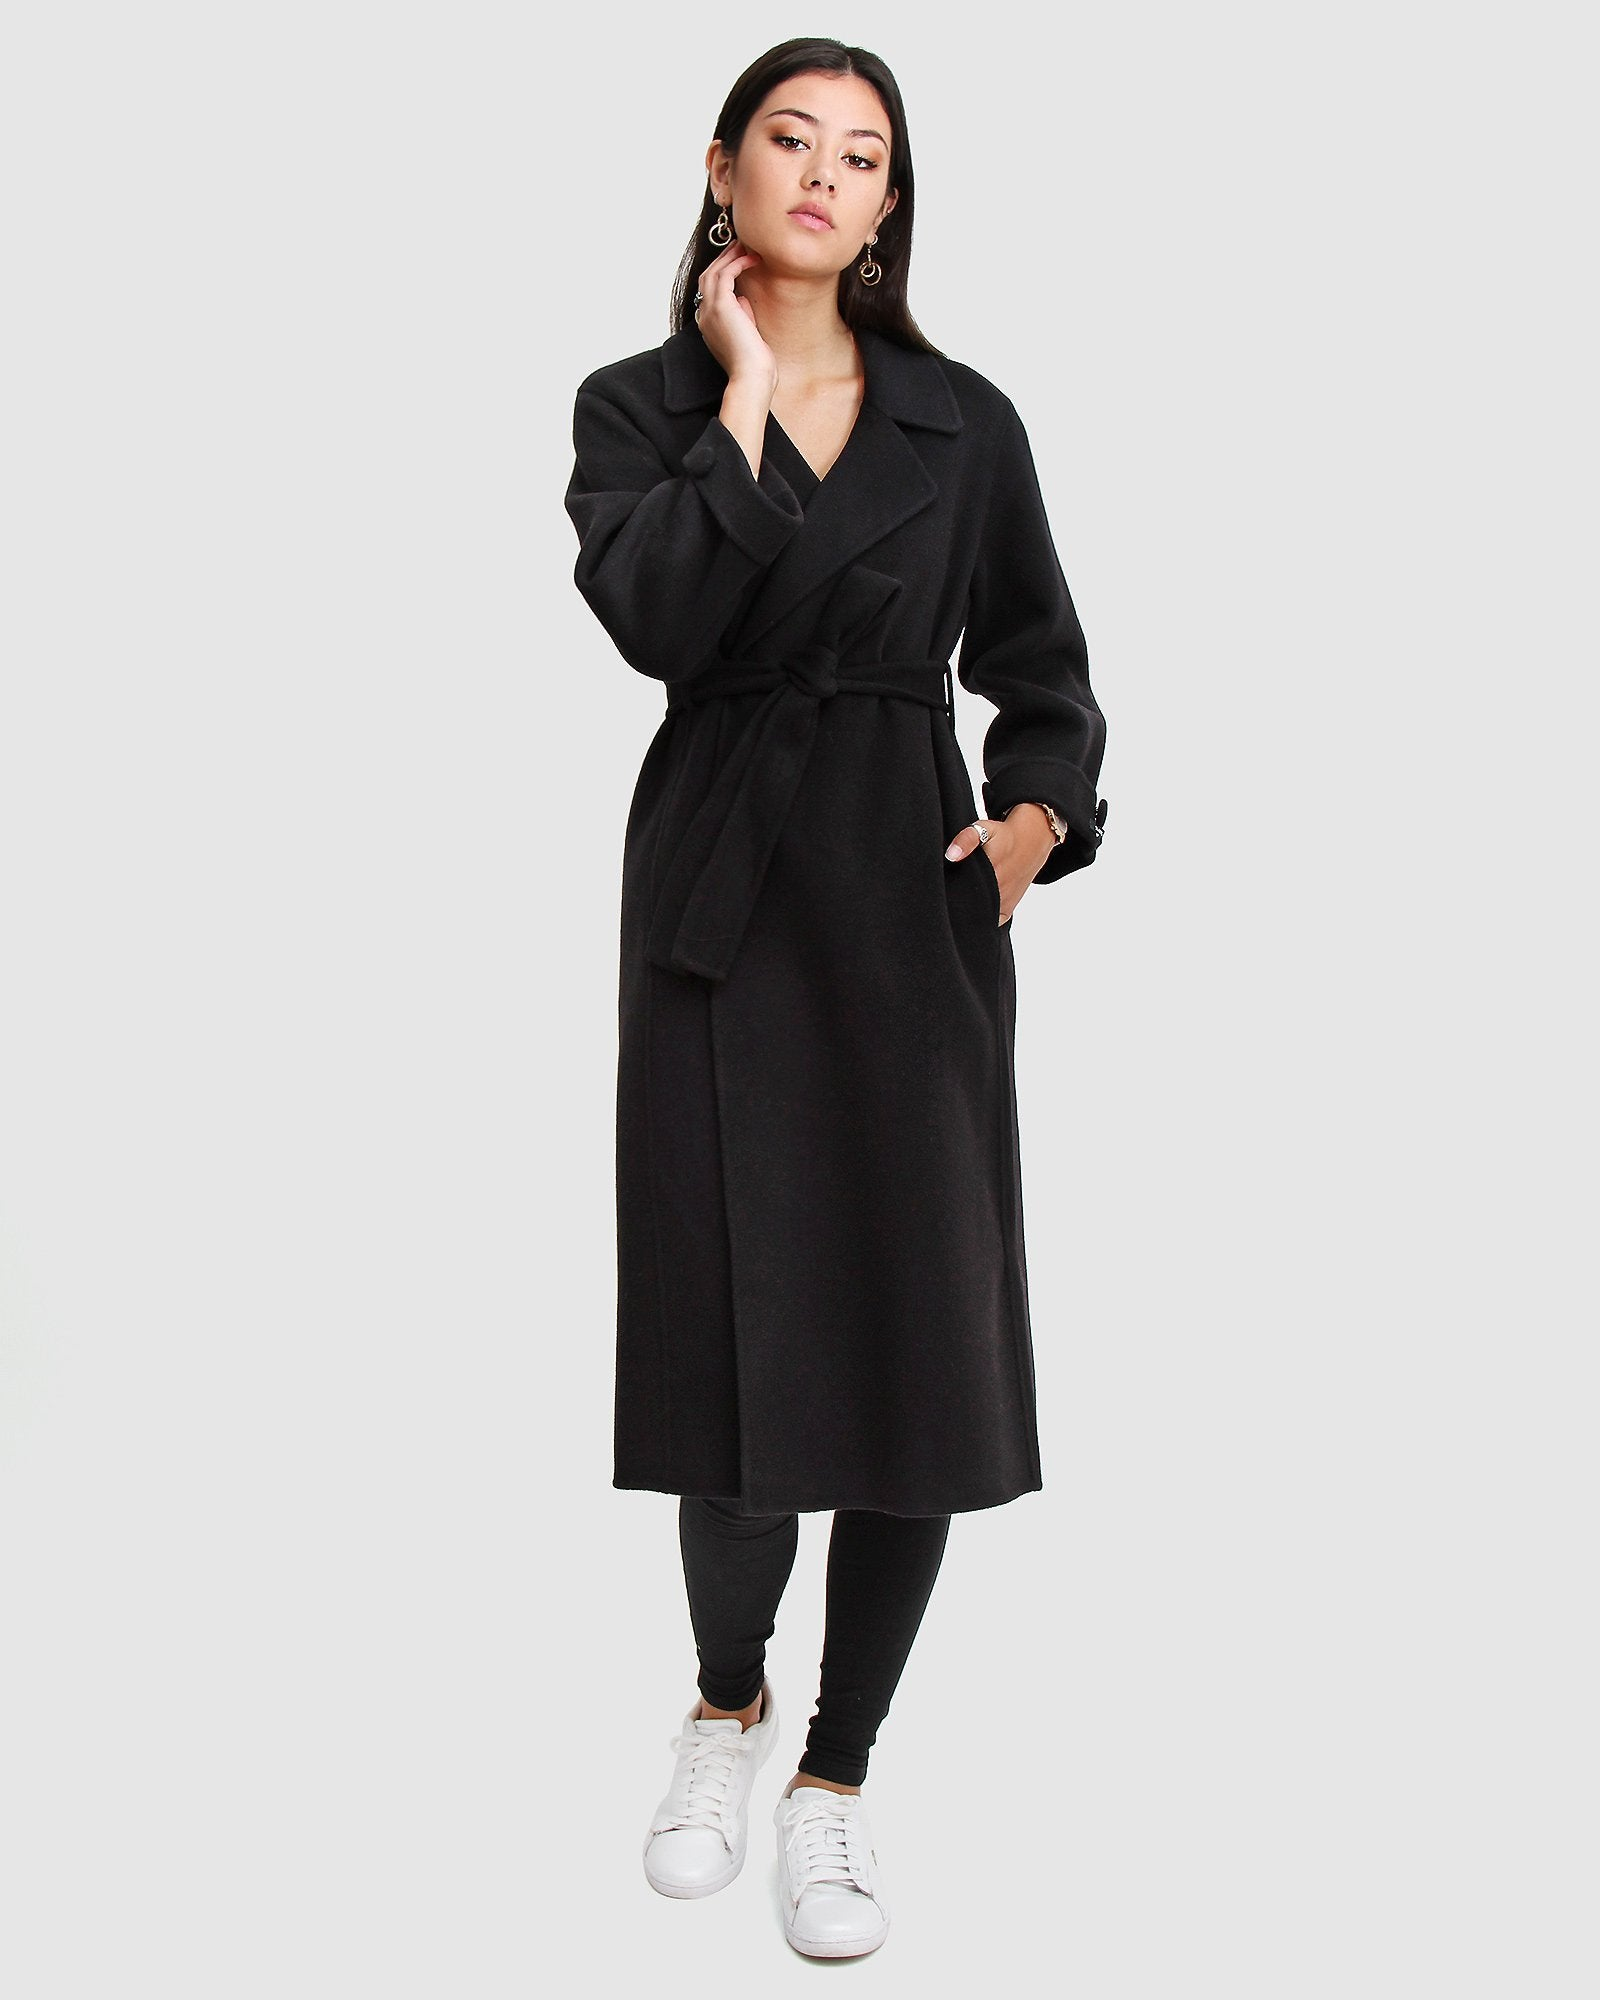 Stay Wild Oversized Wool Coat - Black